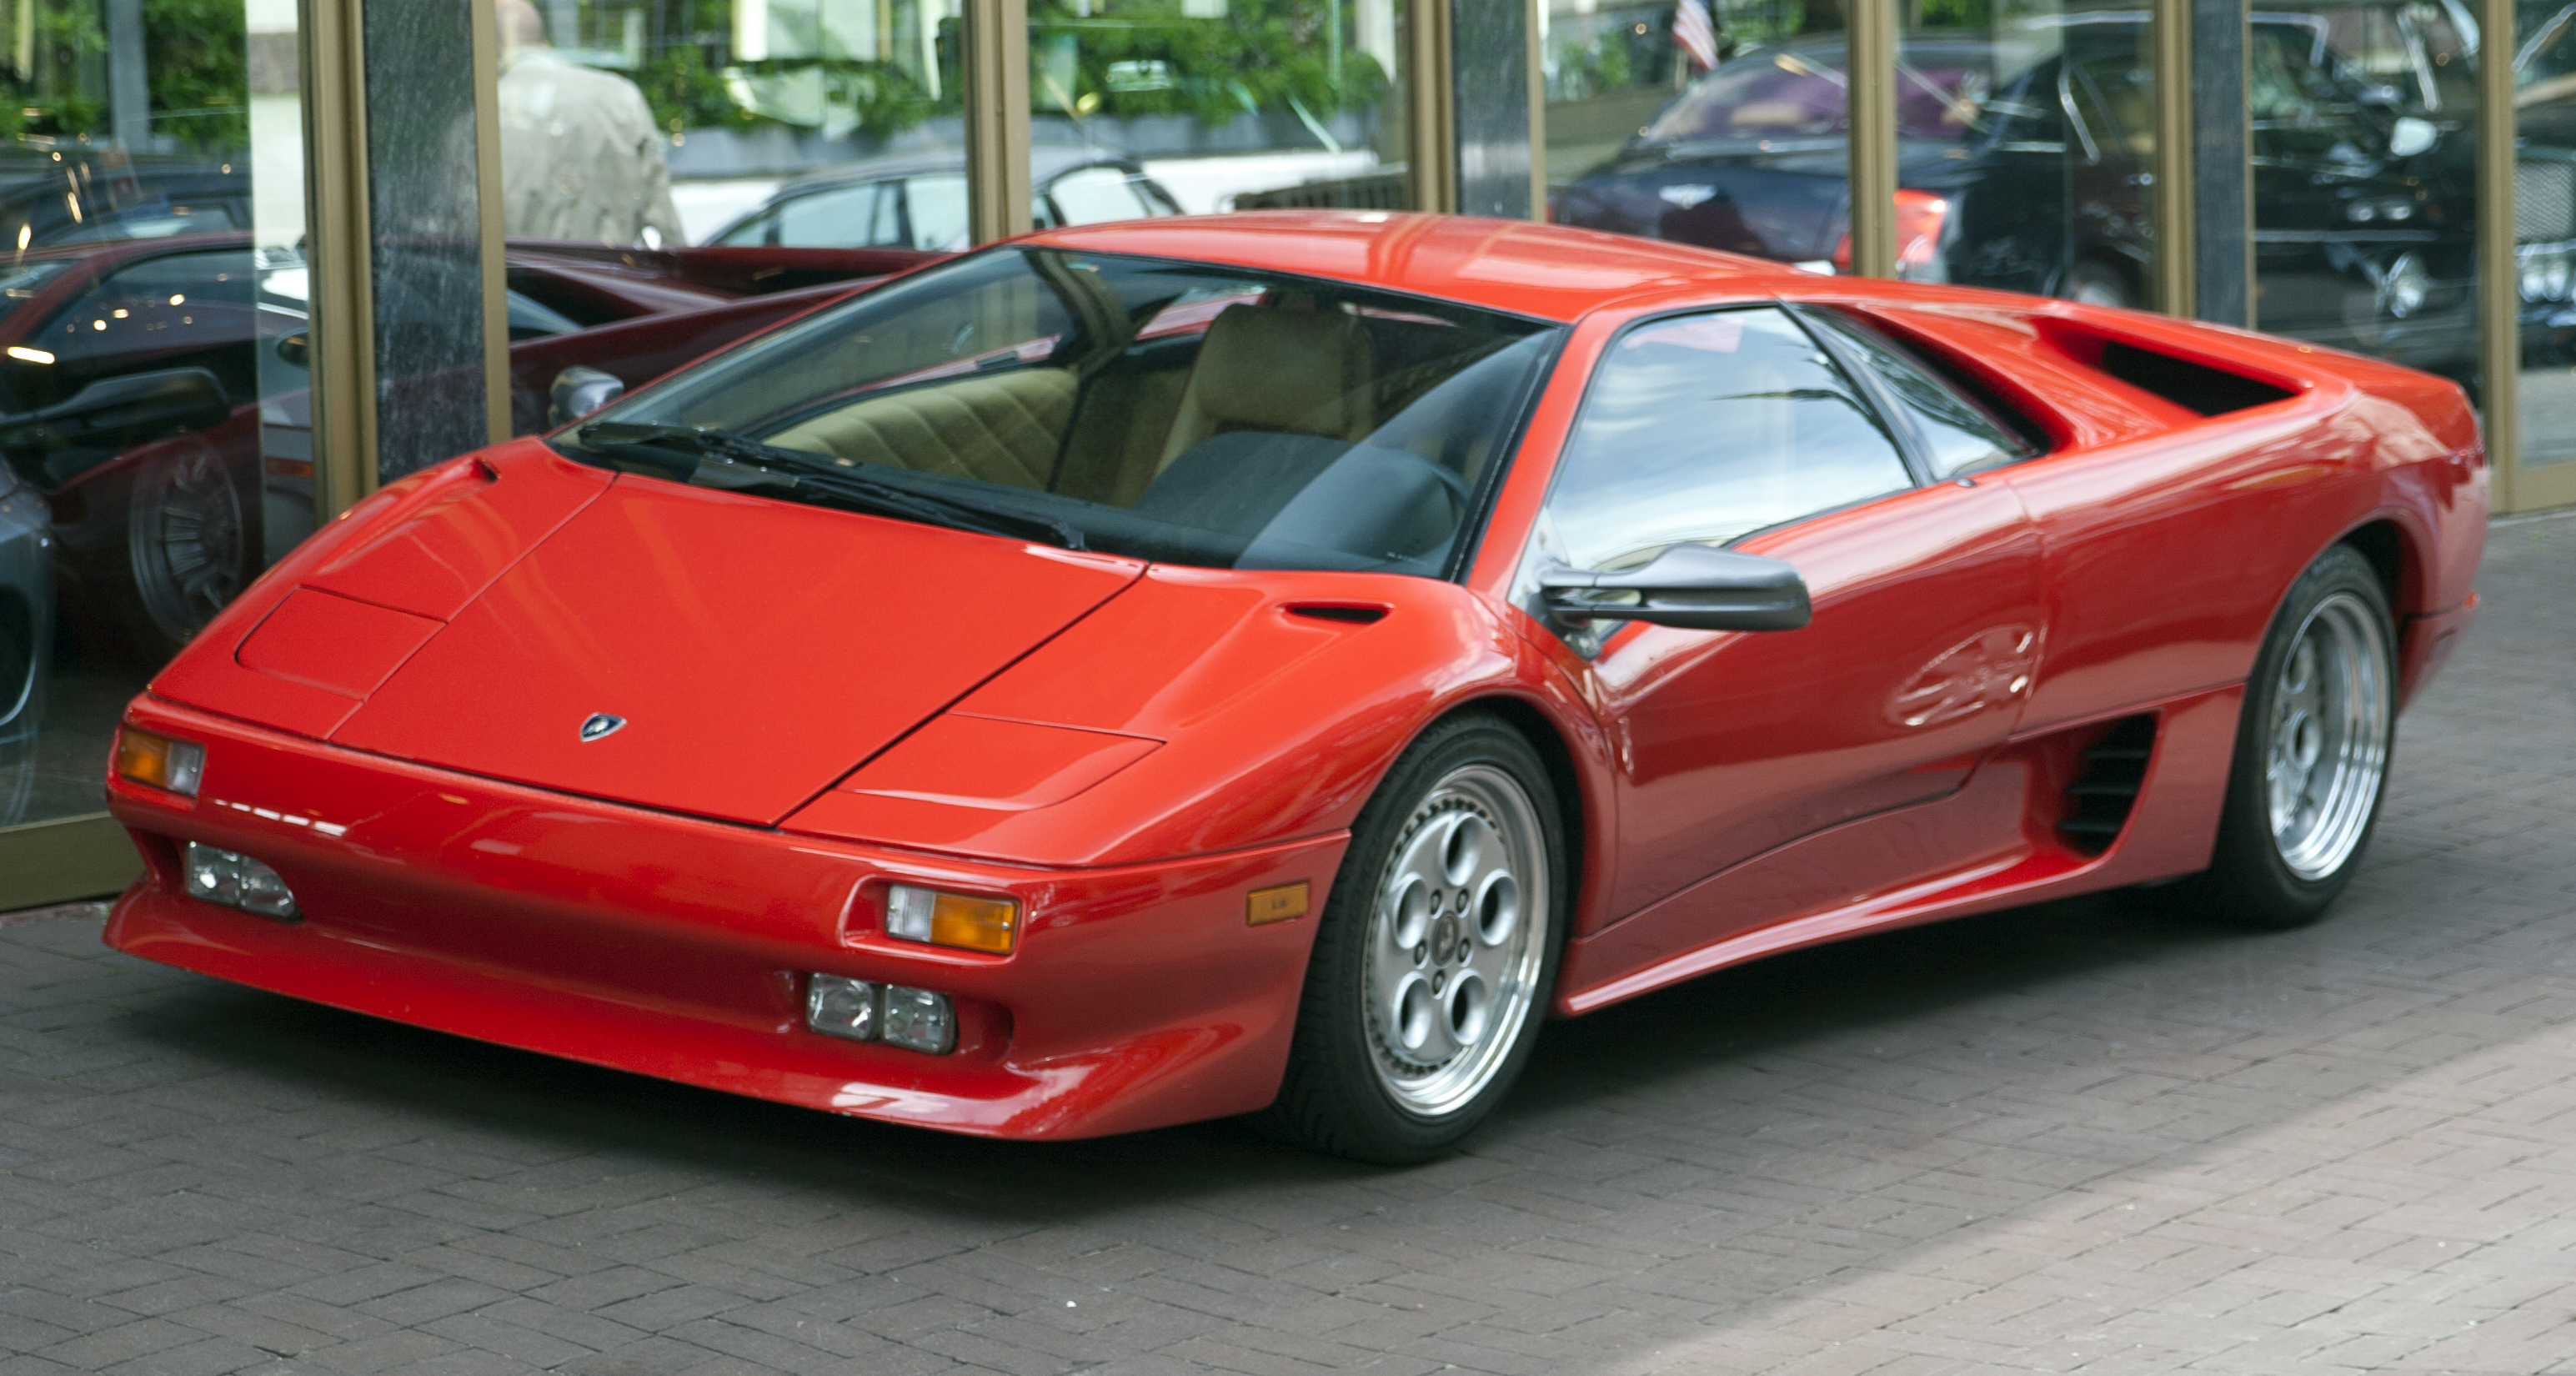 Early_Lamborghini_Diablo_in_red.jpg